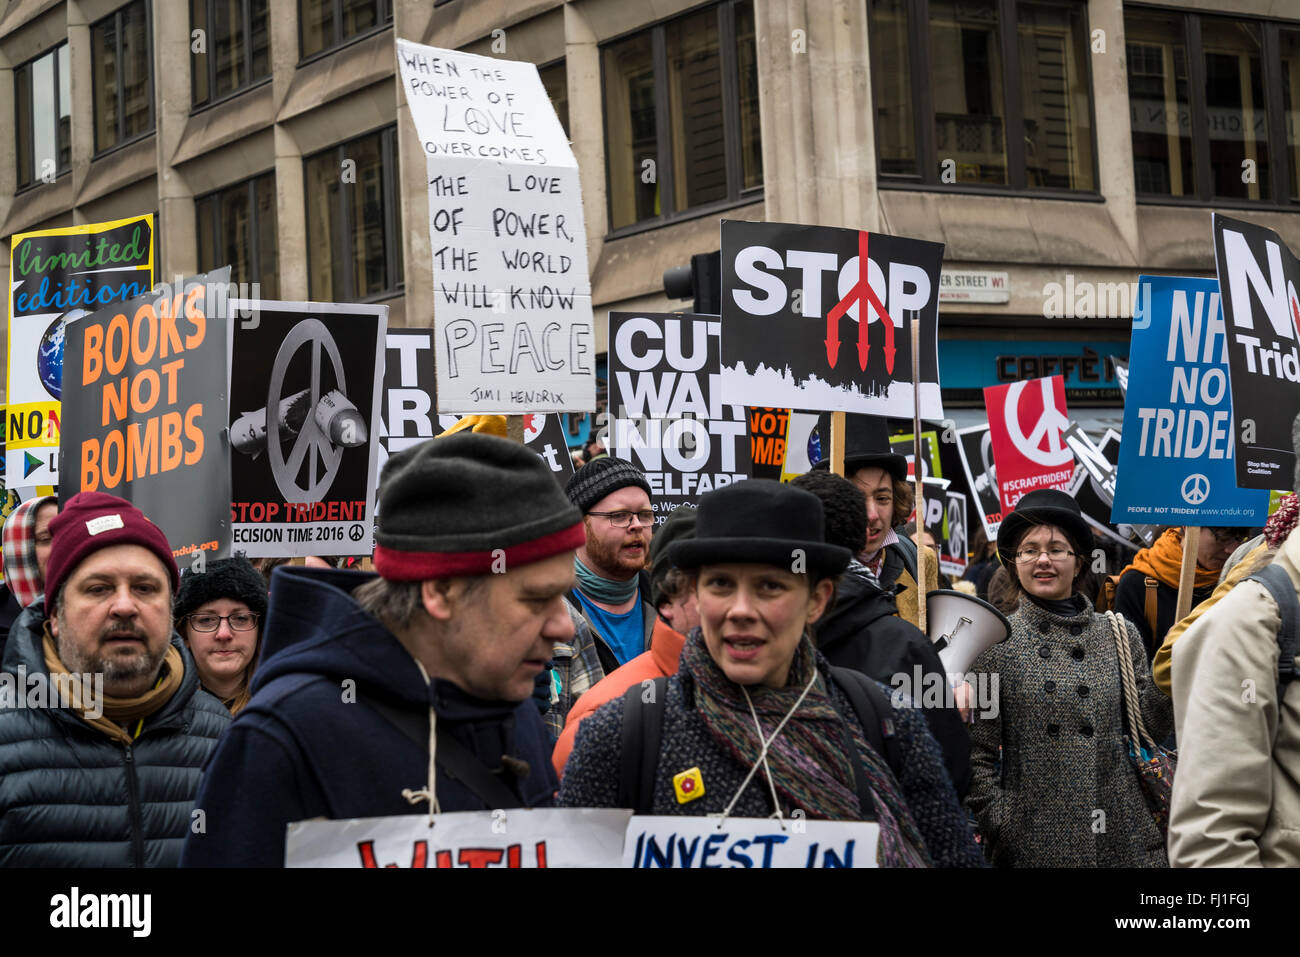 London, UK. 27th Feb, 2016. Stop Trident Demonstration, organized by Campaign for Nuclear Disarmament, London, England, - Stock Image